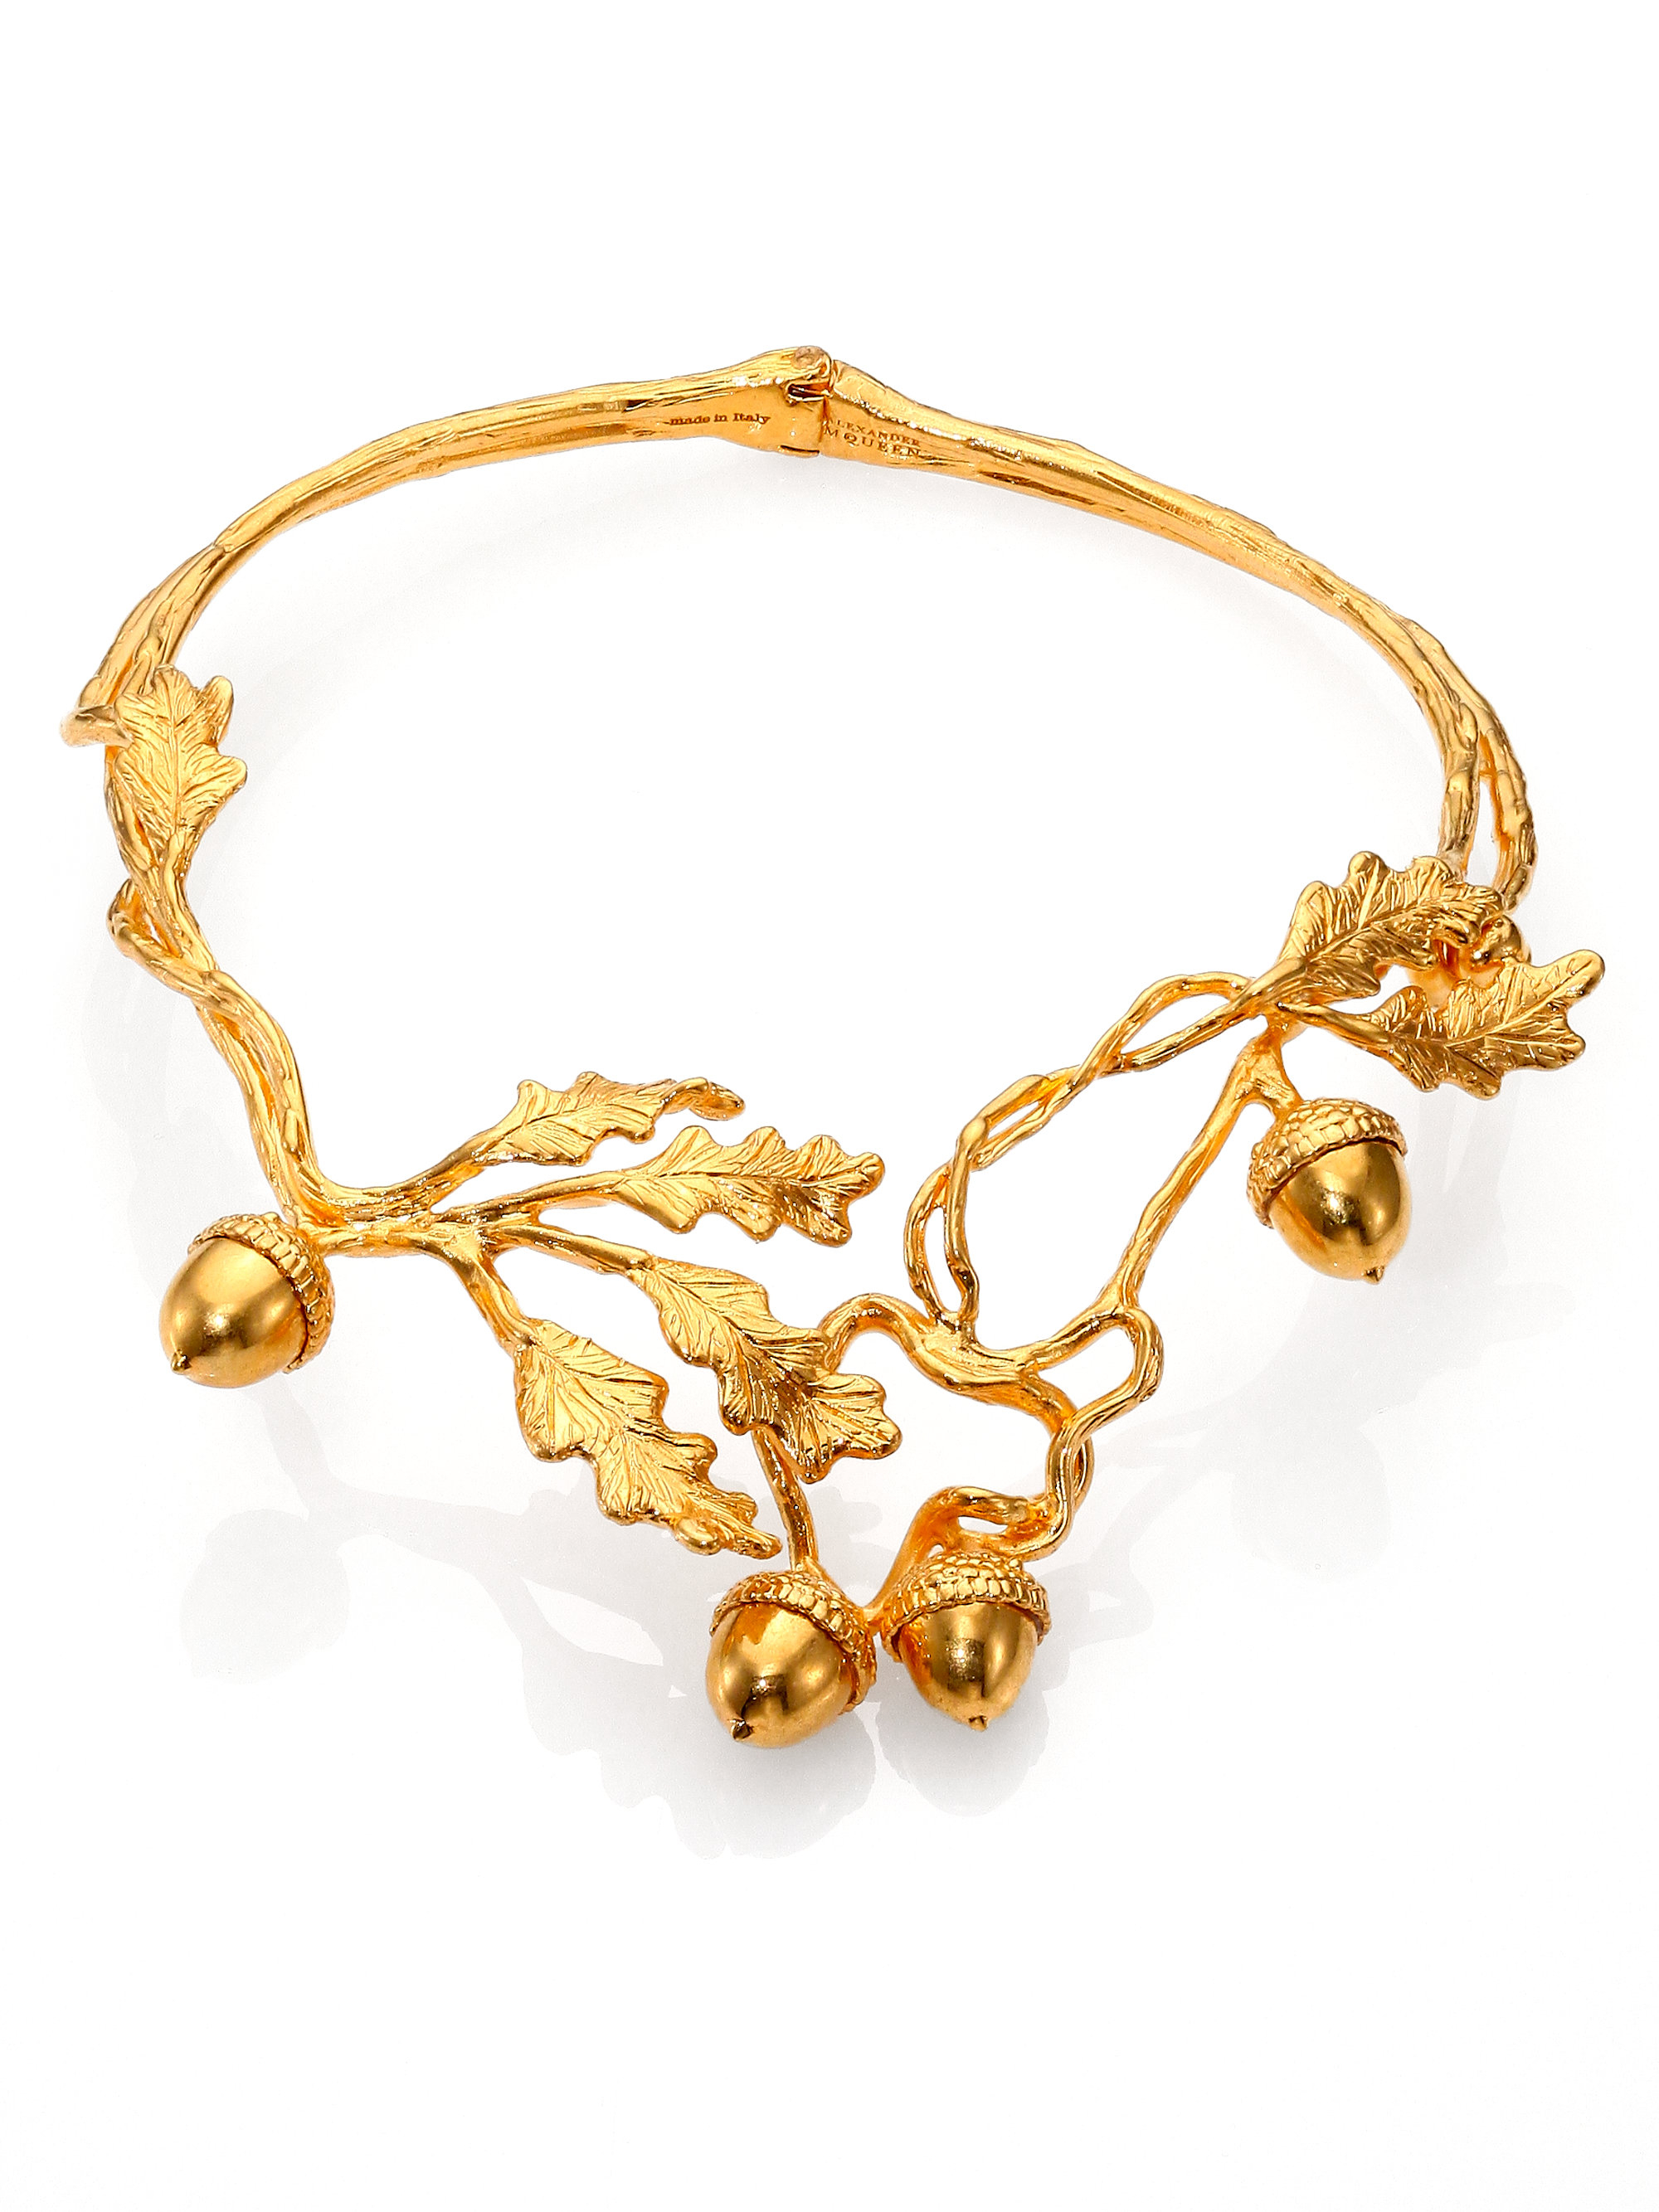 Alexander Mcqueen Leaves Acorn Choker Necklace In Gold For